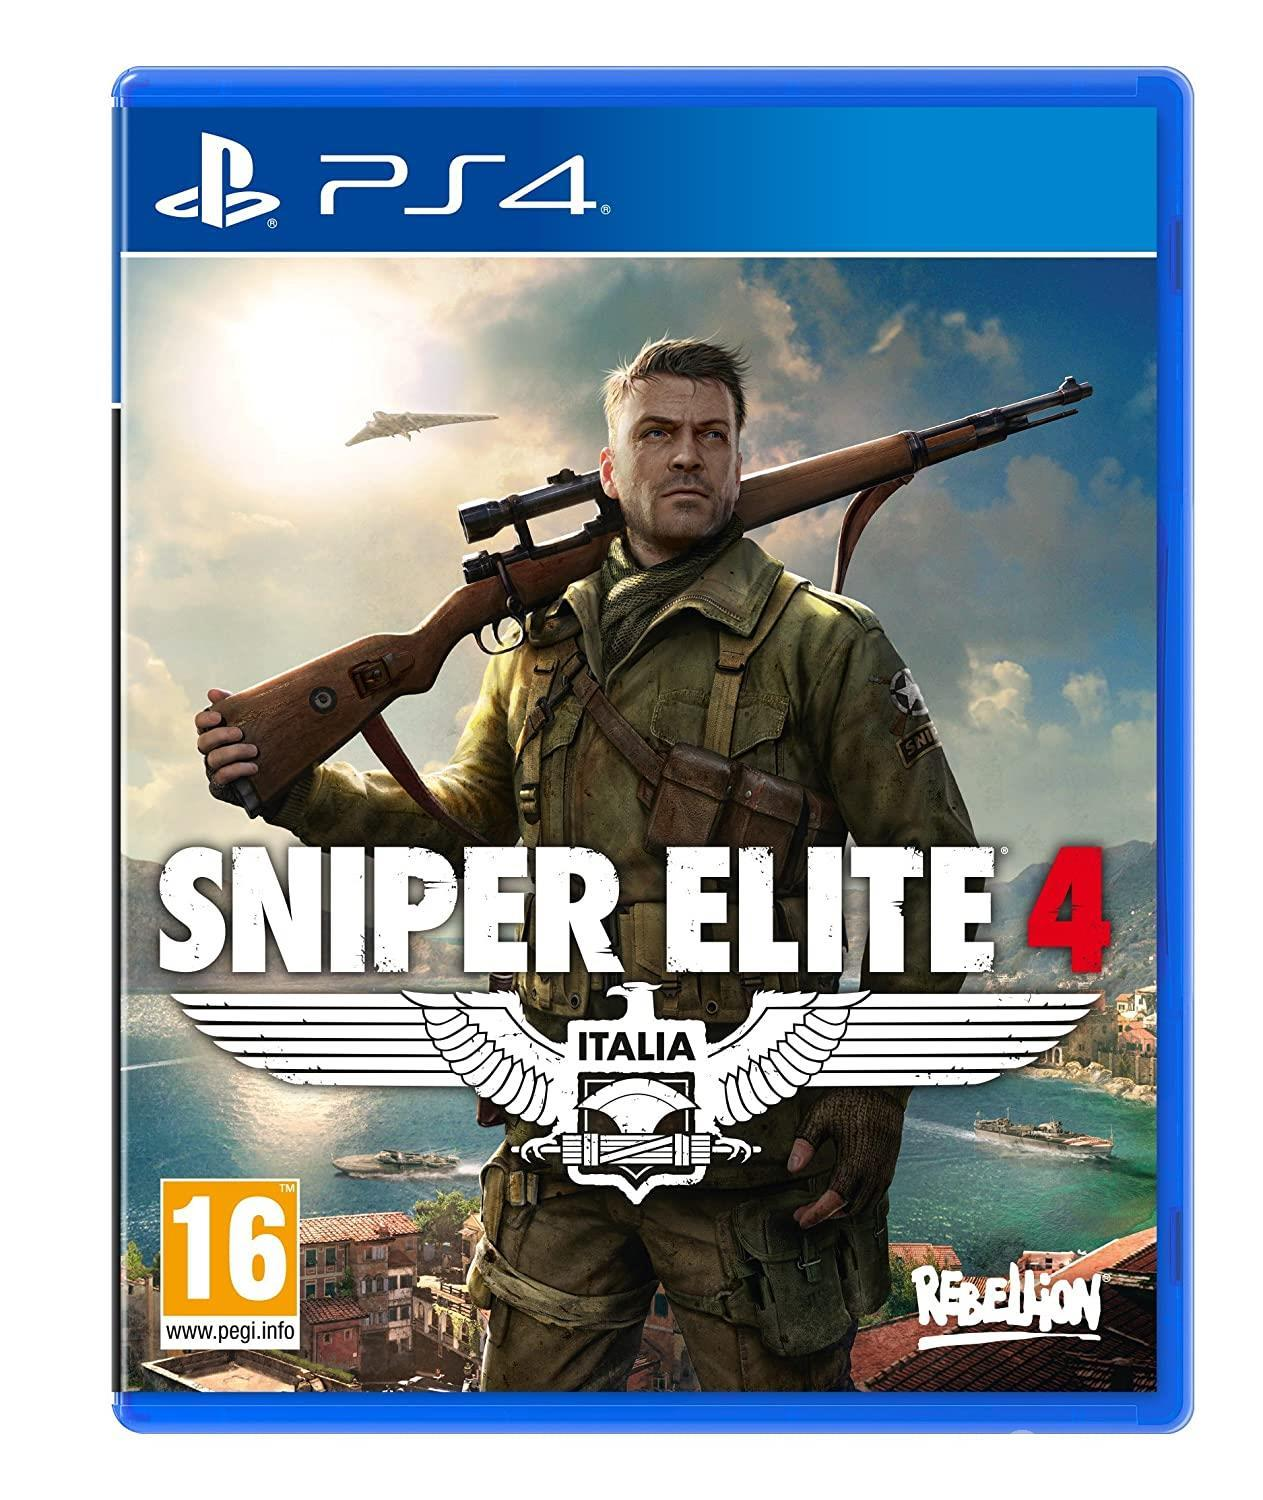 Sniper Elite 4 - one of the best sniper Game for PS 4